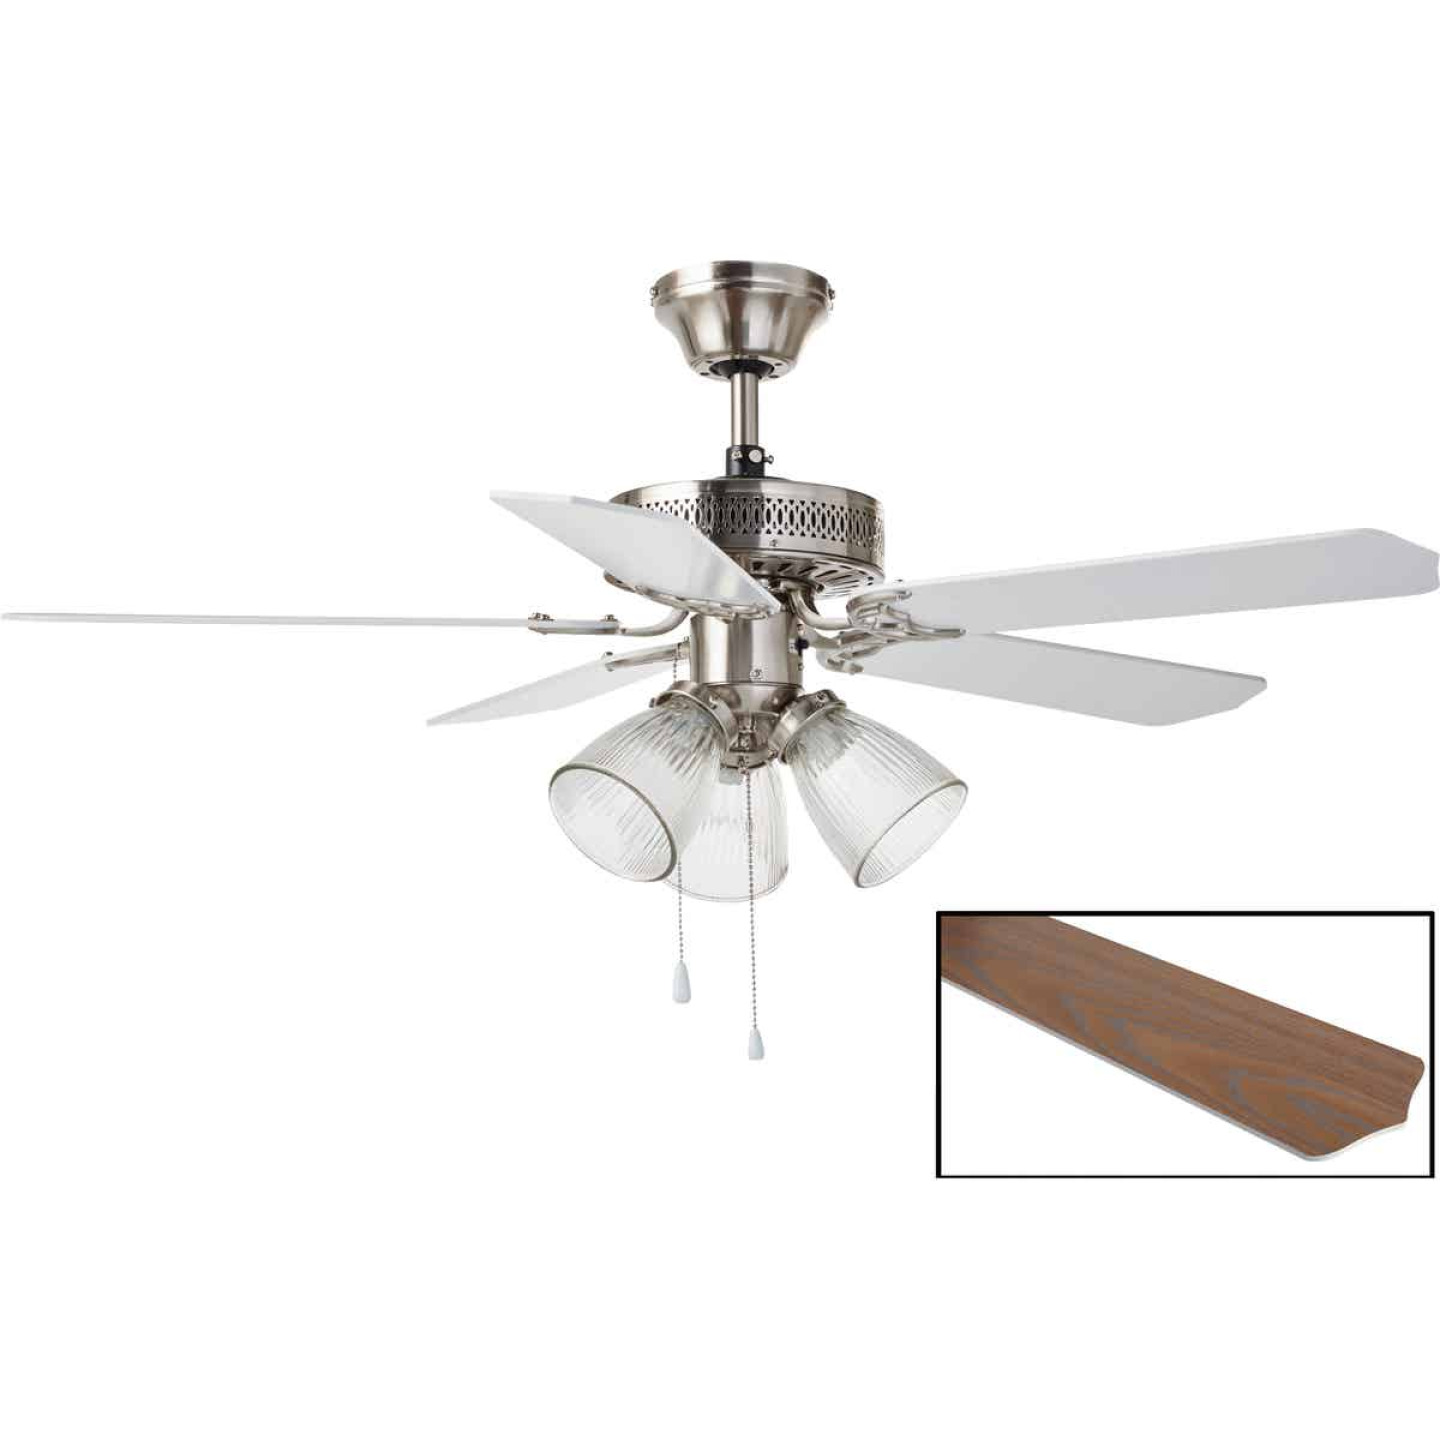 Home Impressions Tradition 42 In. Brushed Nickel Ceiling Fan with Light Kit Image 1